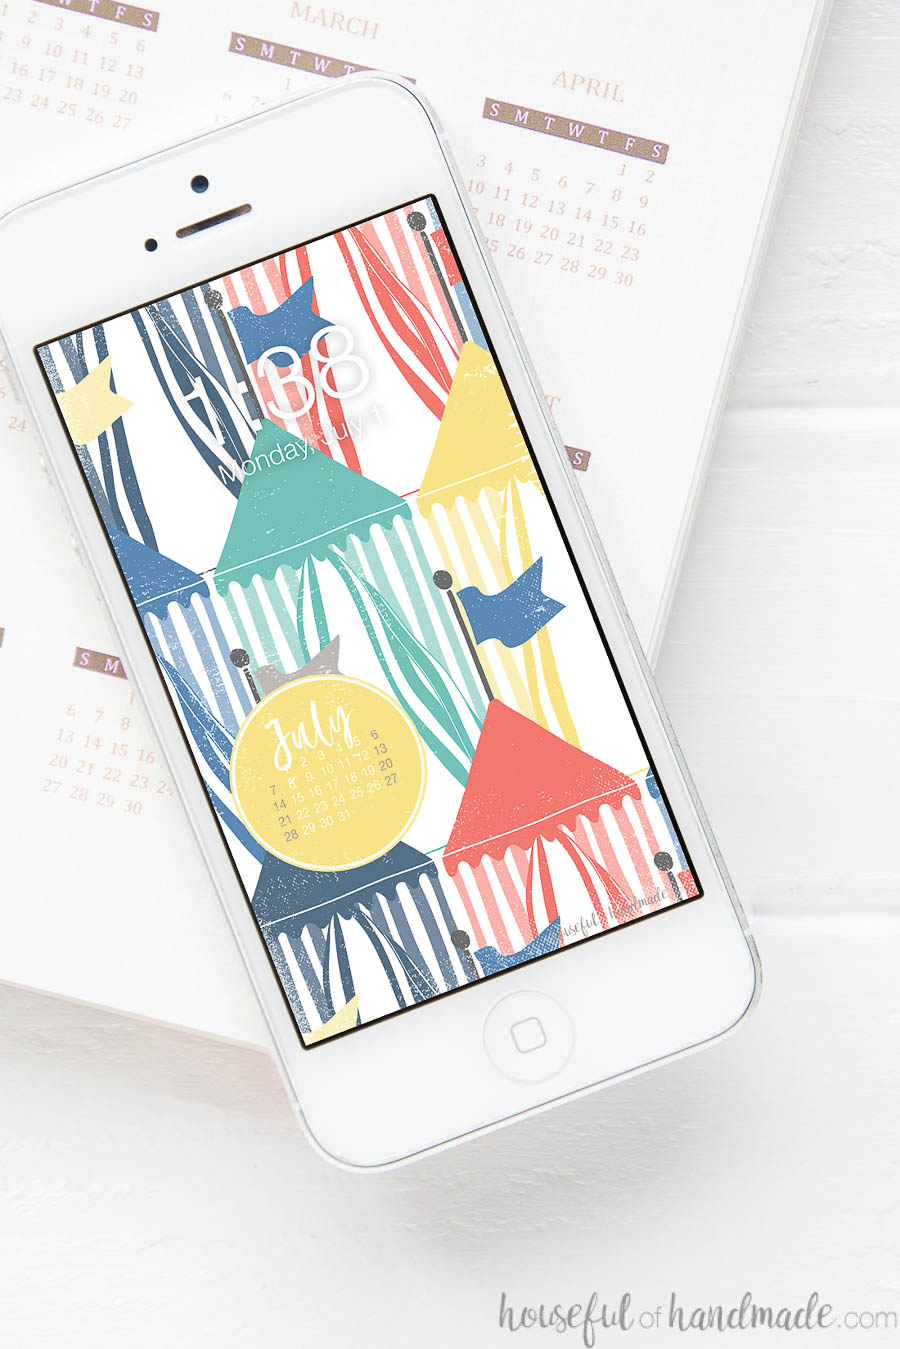 White iPhone with vintage beach hut print digital wallpaper on the screen.